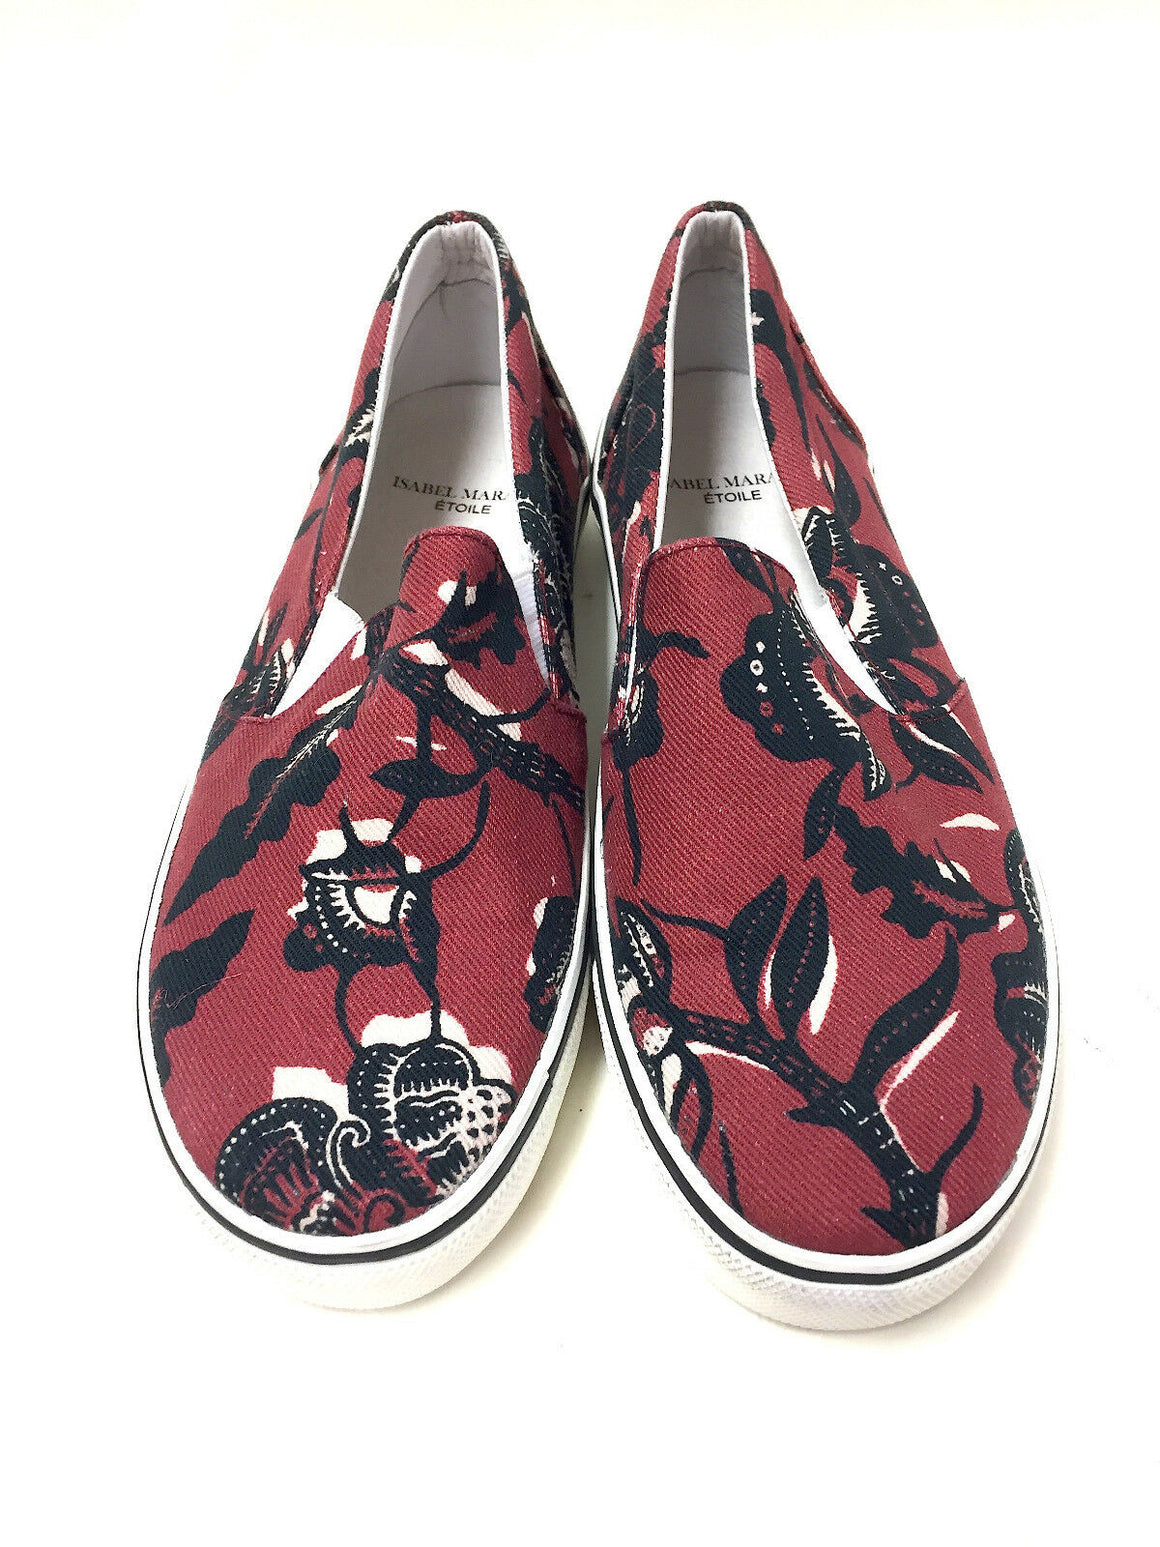 ISABEL MARANT  ETOILE  Claret/Black Floral-Print Canvas Slip-On Sneakers Shoes  Size: EU36 / US6